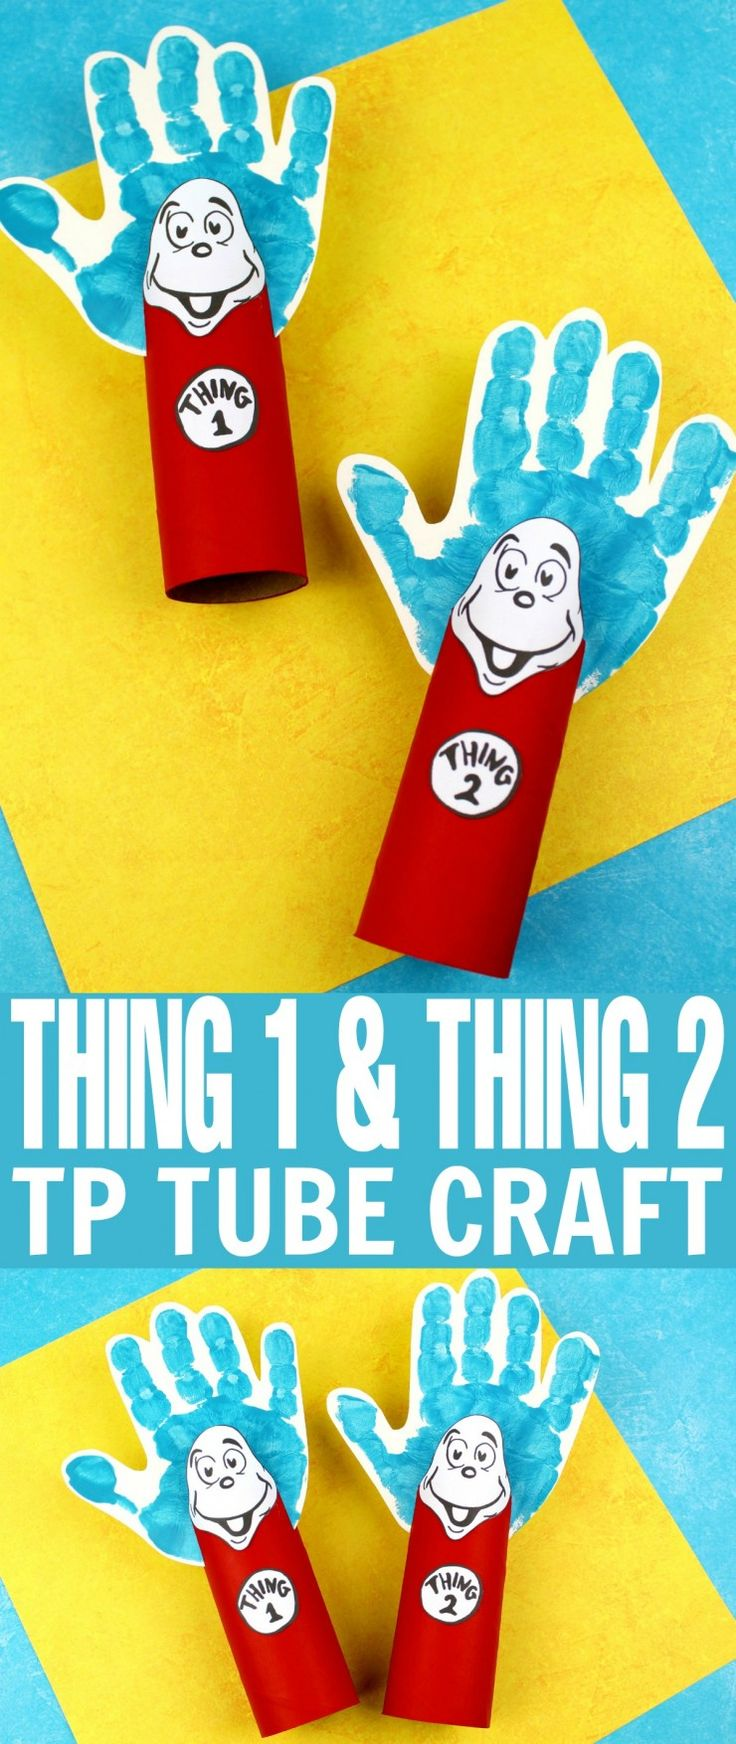 This Thing 1 and Thing 2 Toilet Paper Tube Craft is a fun kids craft that ties in really well with The Cat in the Hat. It's a perfect craft for Dr. Seuss day which is coming up on the March 2nd!